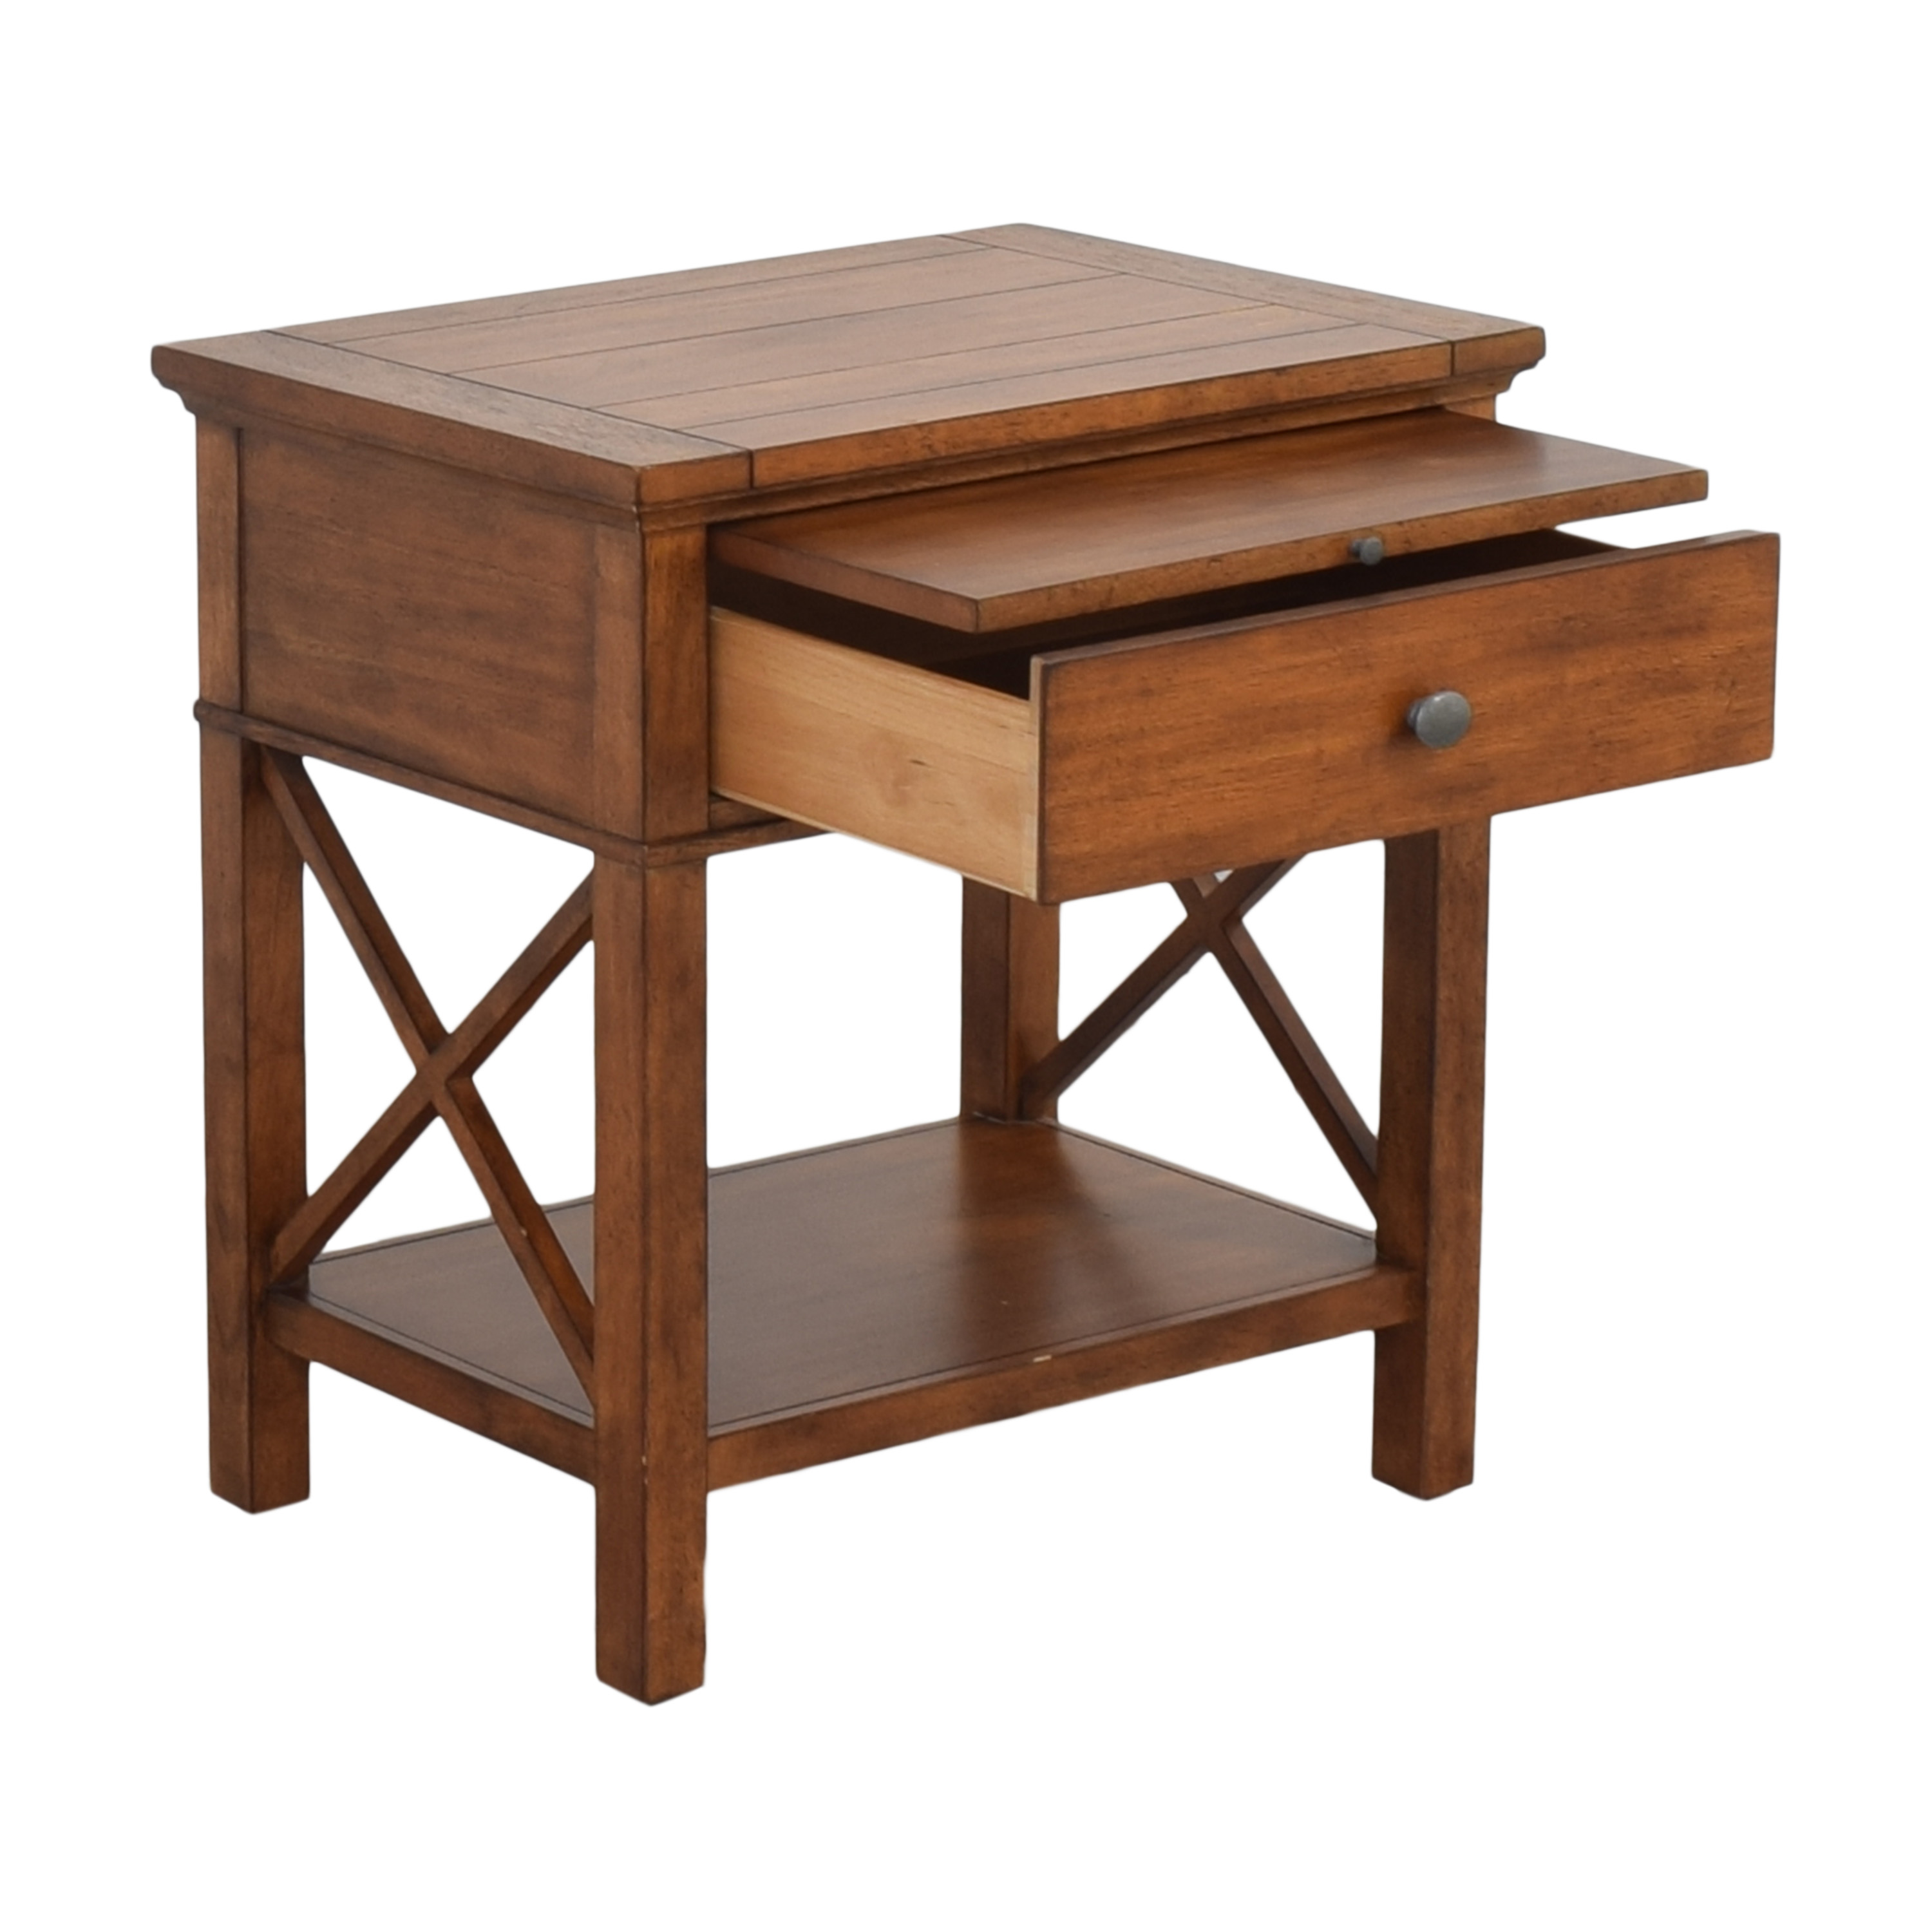 Ethan Allen Ethan Allen Alec X Night Table with Desk Extension coupon